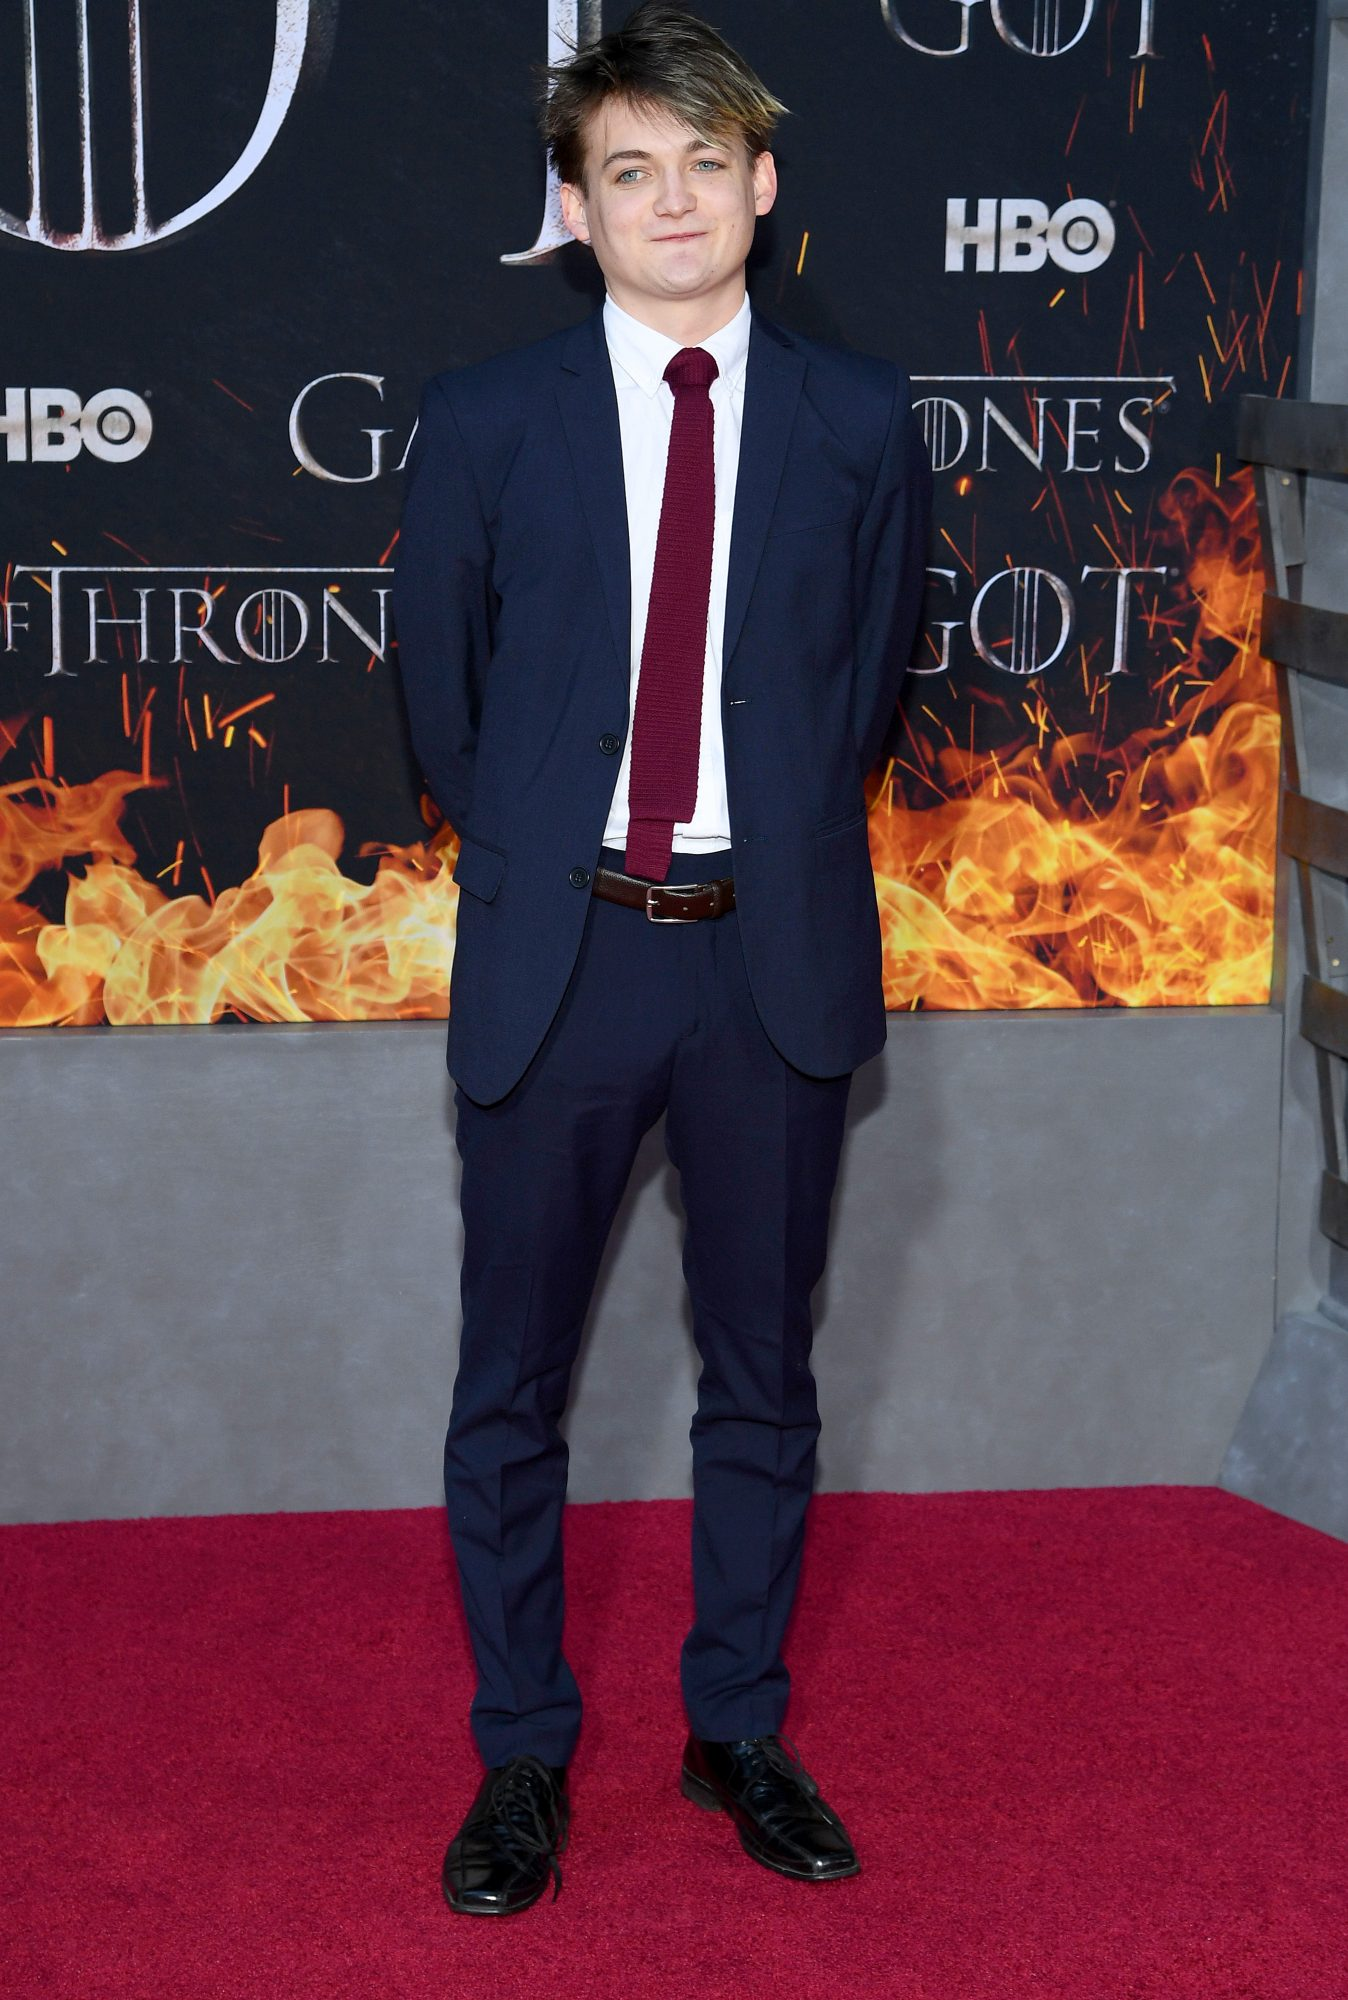 "NEW YORK, NEW YORK - APRIL 03: Jack Gleeson attends the ""Game Of Thrones"" Season 8 Premiere on April 03, 2019 in New York City. (Photo by Dimitrios Kambouris/Getty Images)"